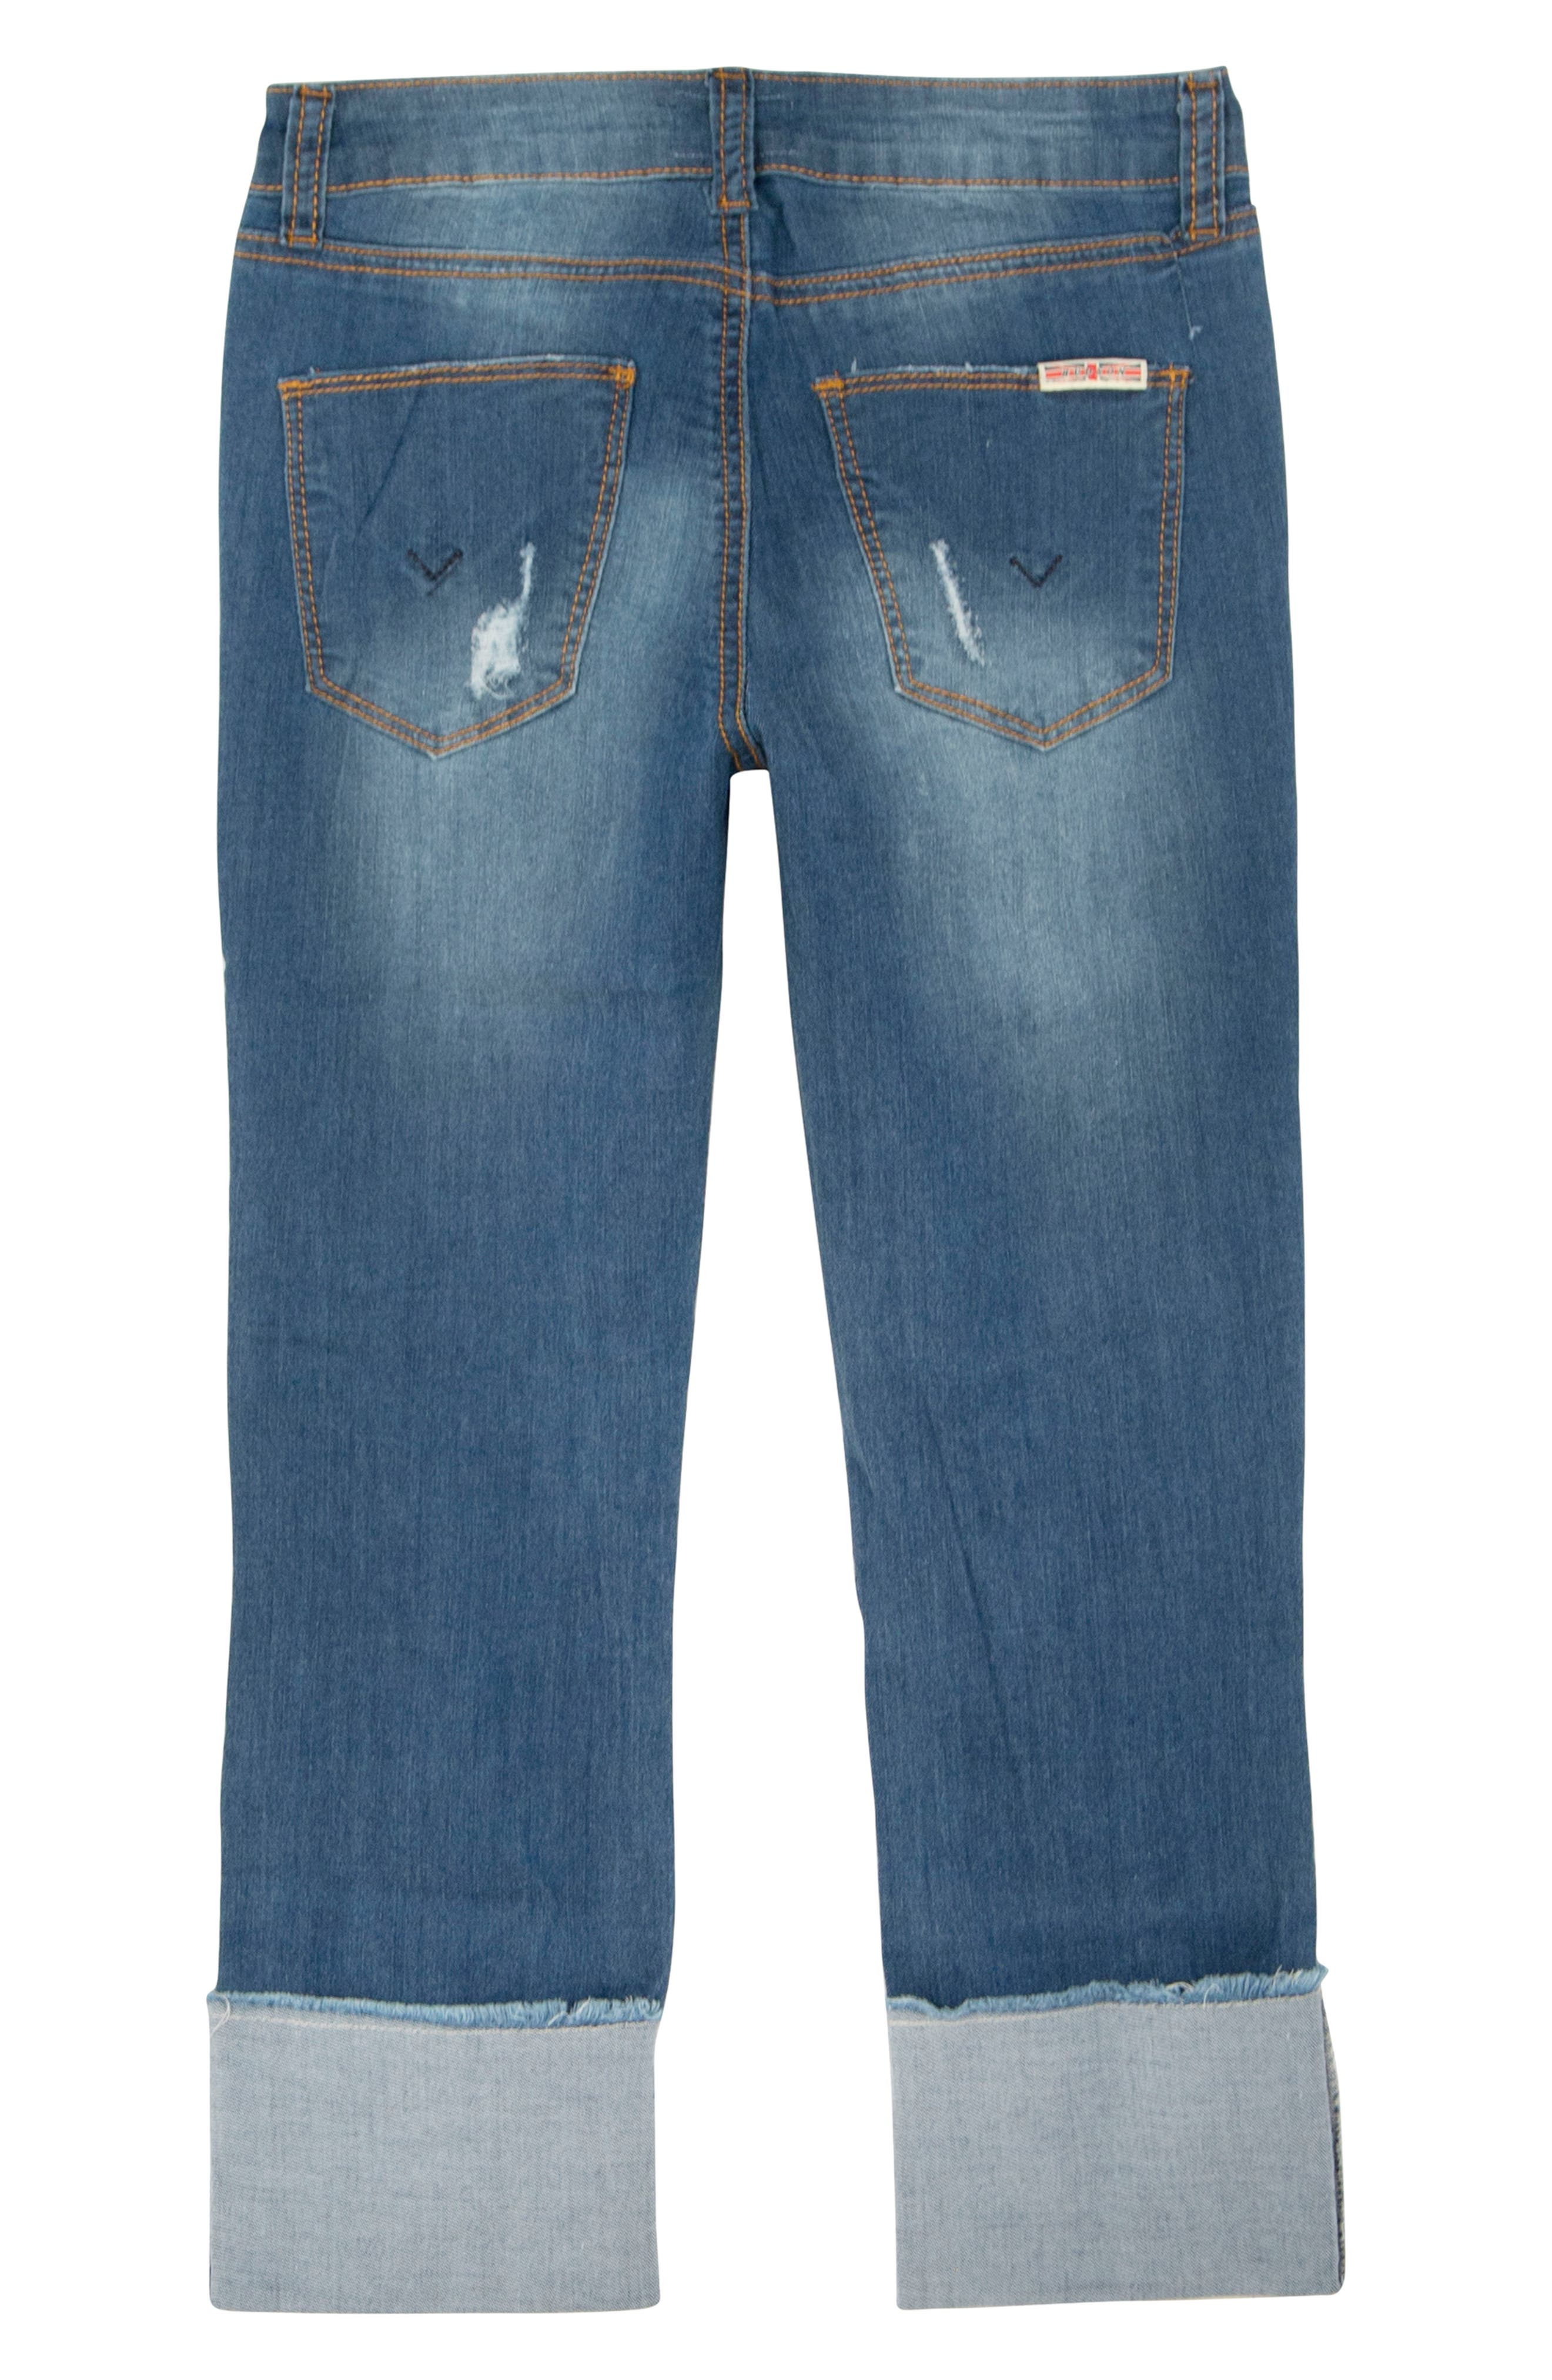 Jessa Crop Skinny Jeans,                             Alternate thumbnail 2, color,                             Jetty Blue